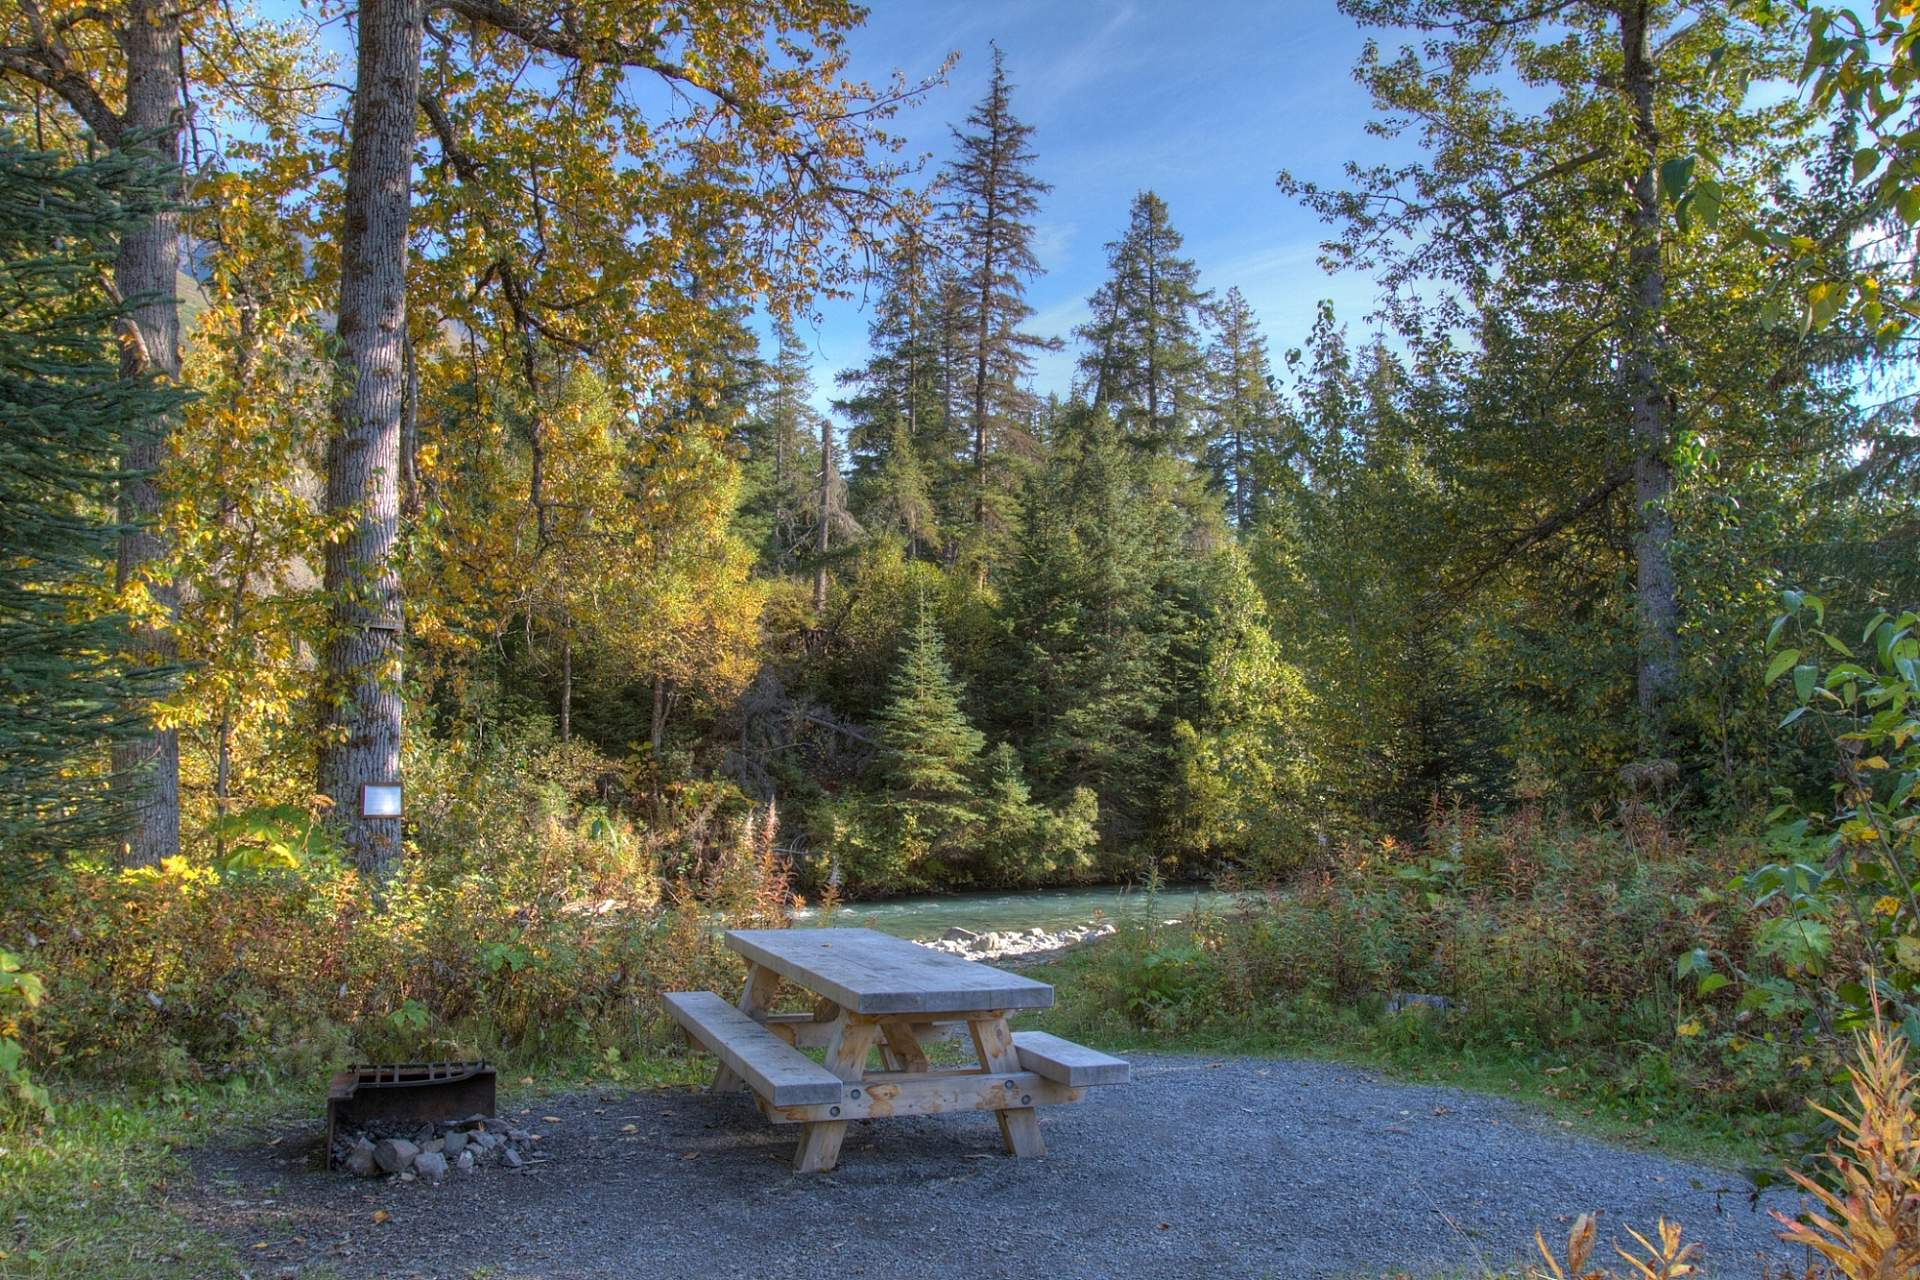 A picnic table in a forest setting at Ptarmigan Creek Campground